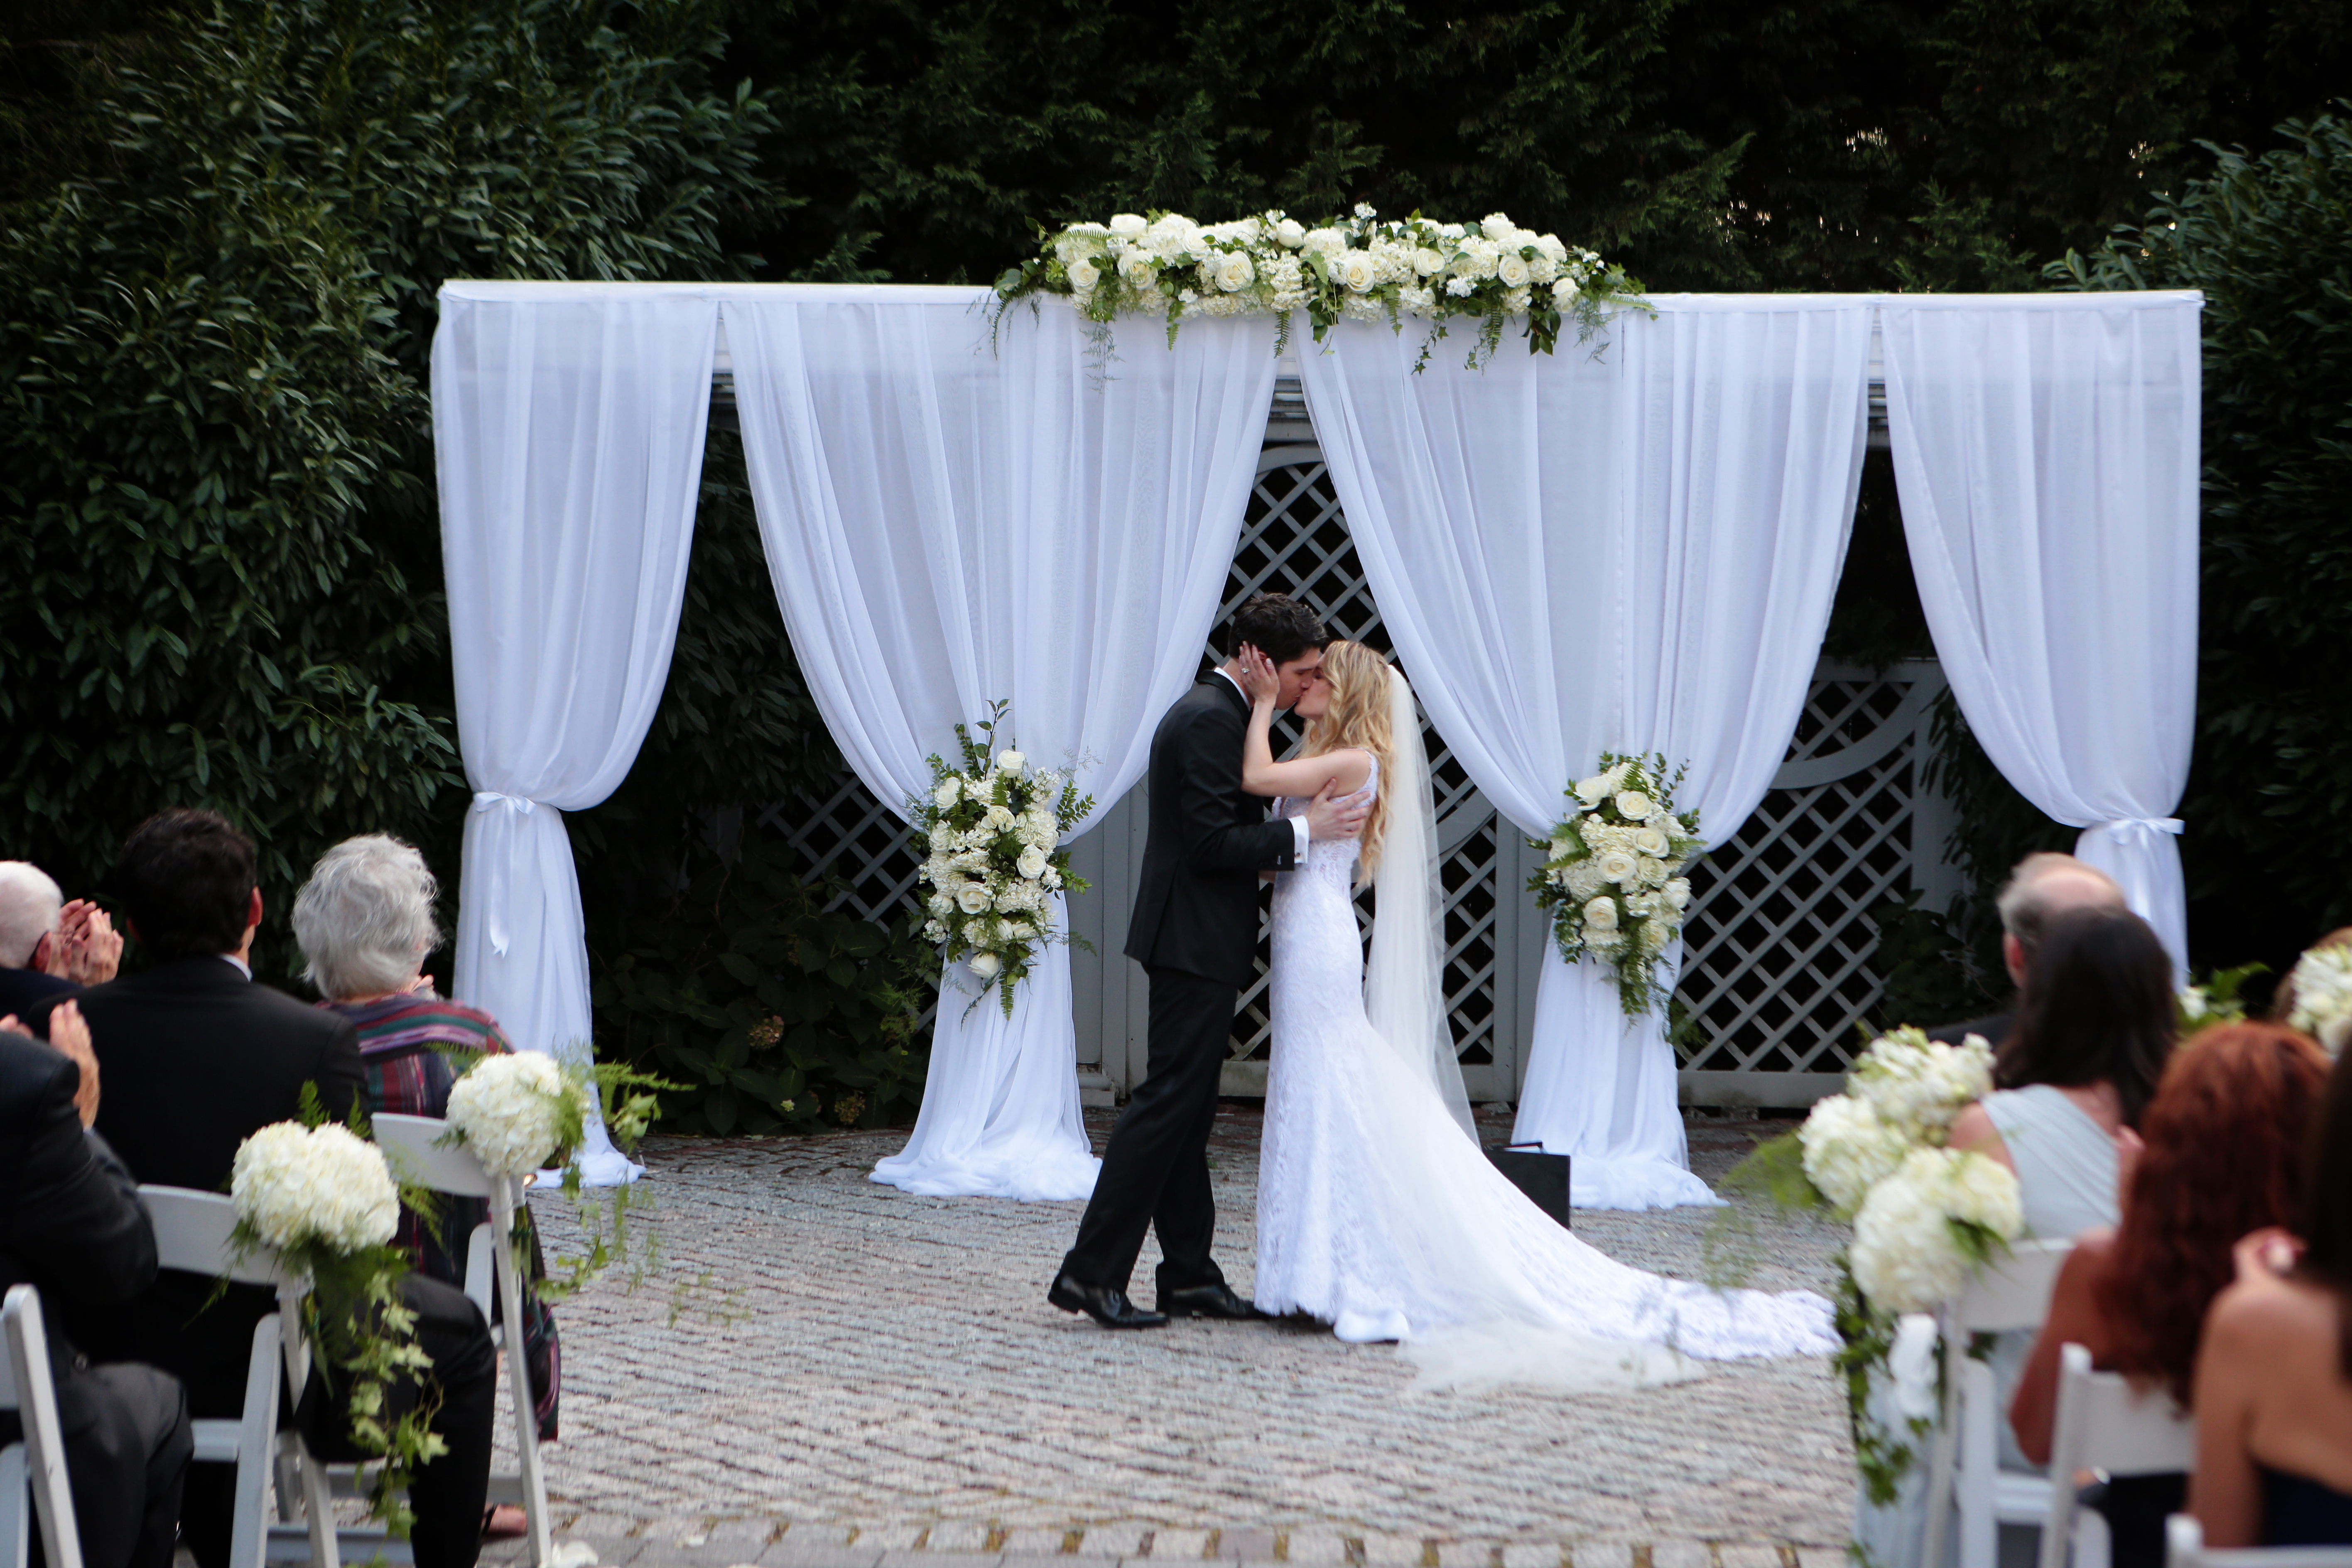 A classic garden ceremony for our bride and groom at The New York Botanical Gardens. Read the blog for all the details and romantic pictures!